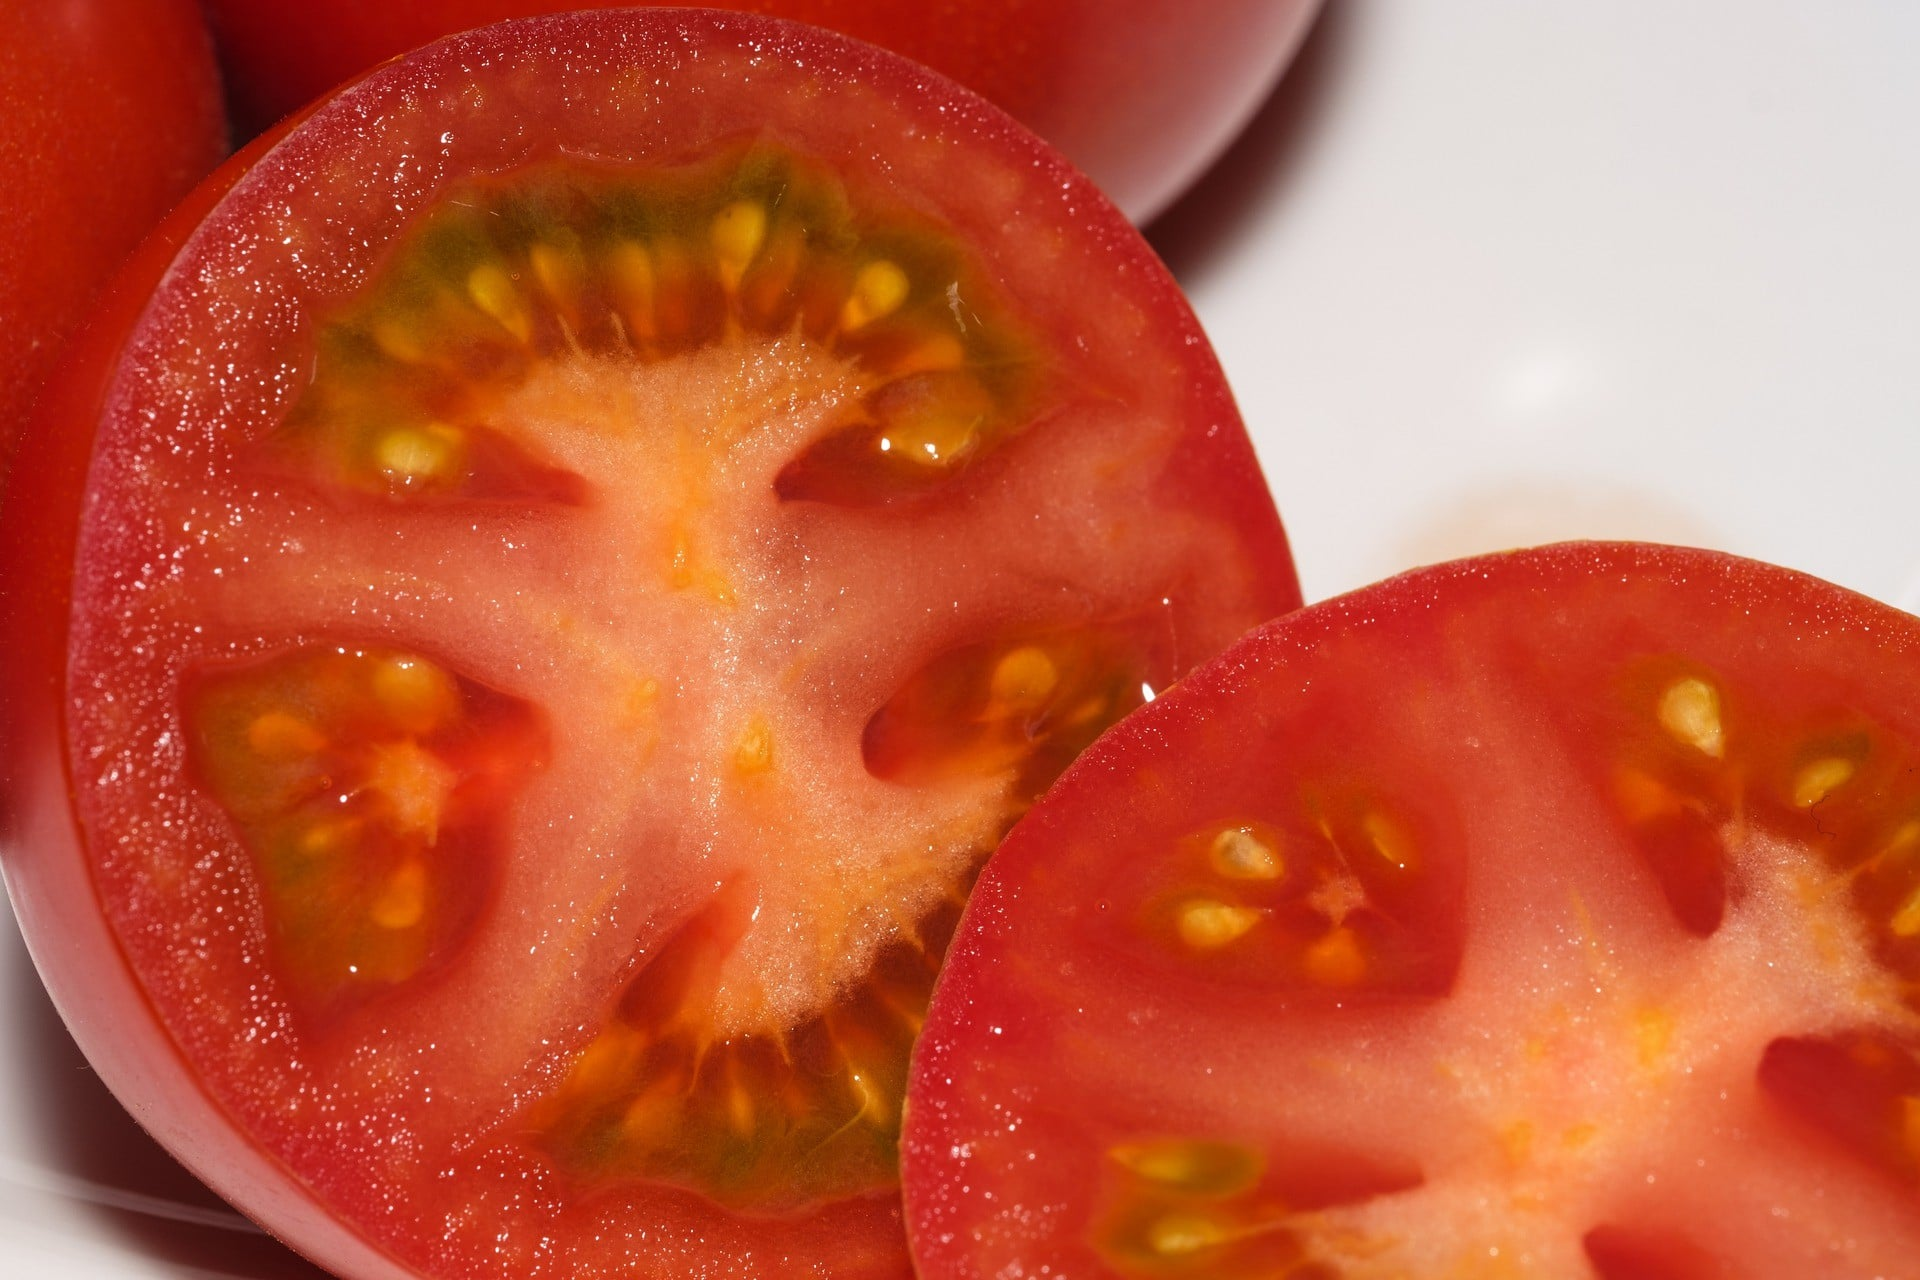 Tomatoes are considered a fruit because it contains seeds.